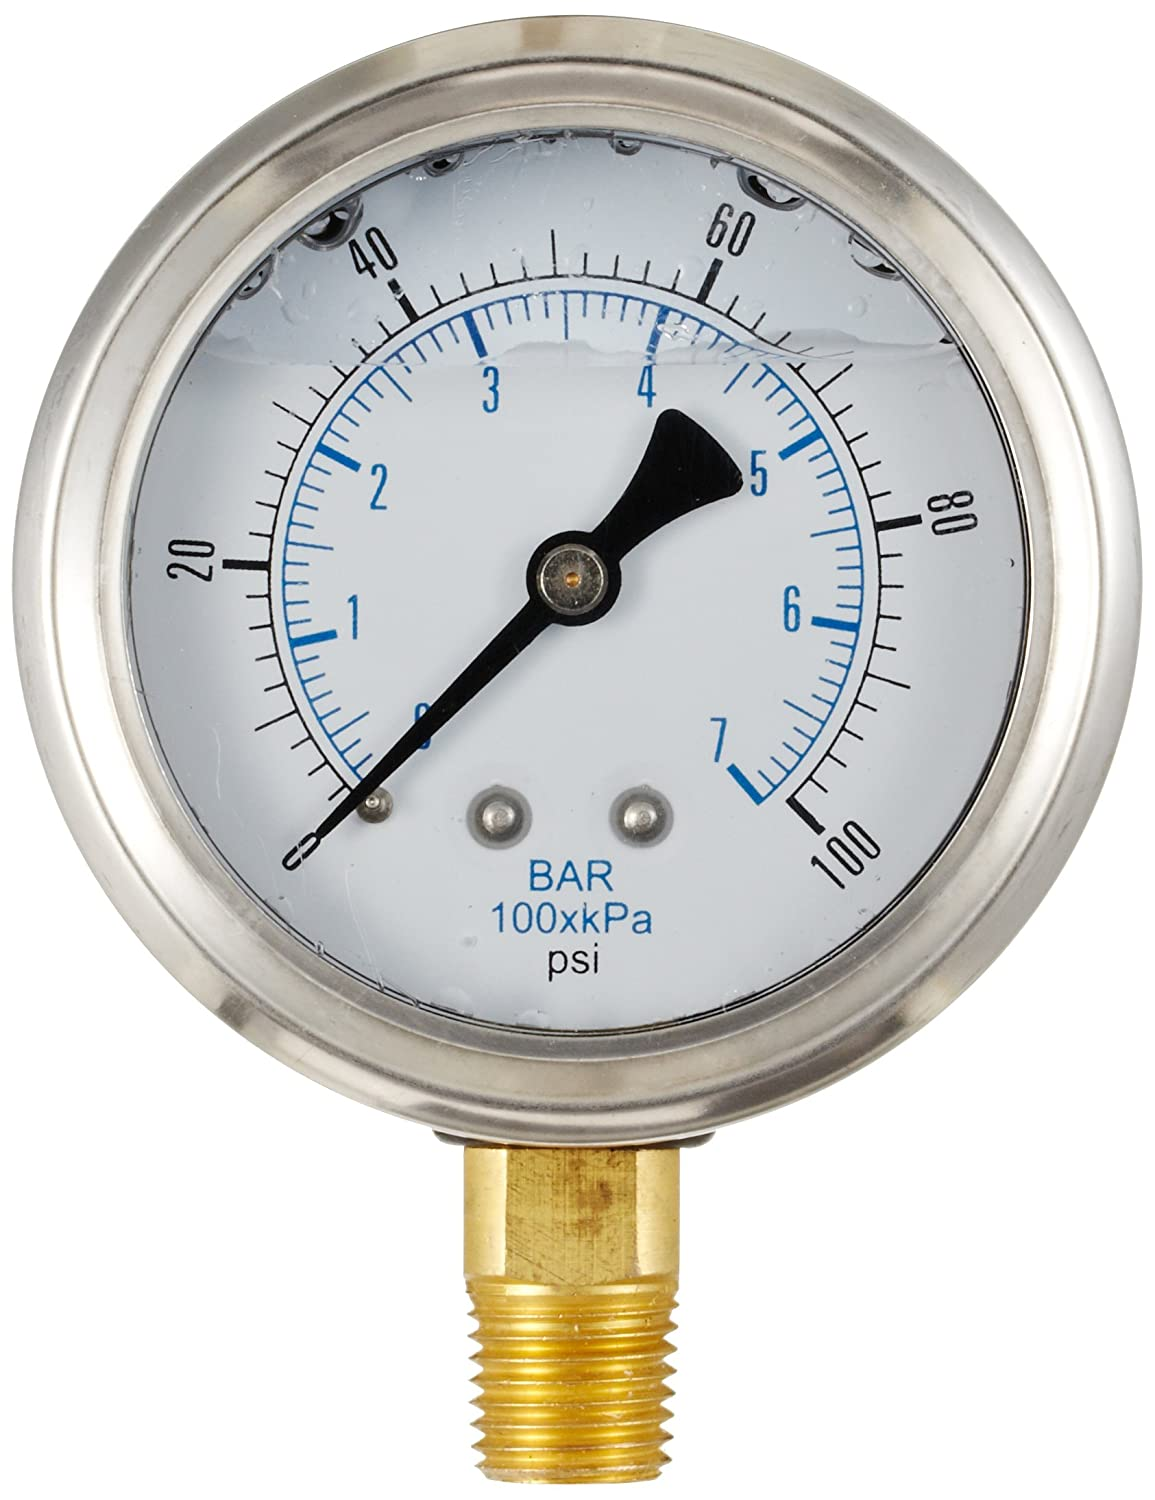 PIC Gauge 201L 208F 2 Dial 0 160 psi Range 1 8 Male NPT Connection Size Bottom Mount Glycerine Filled Pressure Gauge with a Stainless Steel Case Brass Internals Stainless Steel Bezel and Polycarbonate Lens